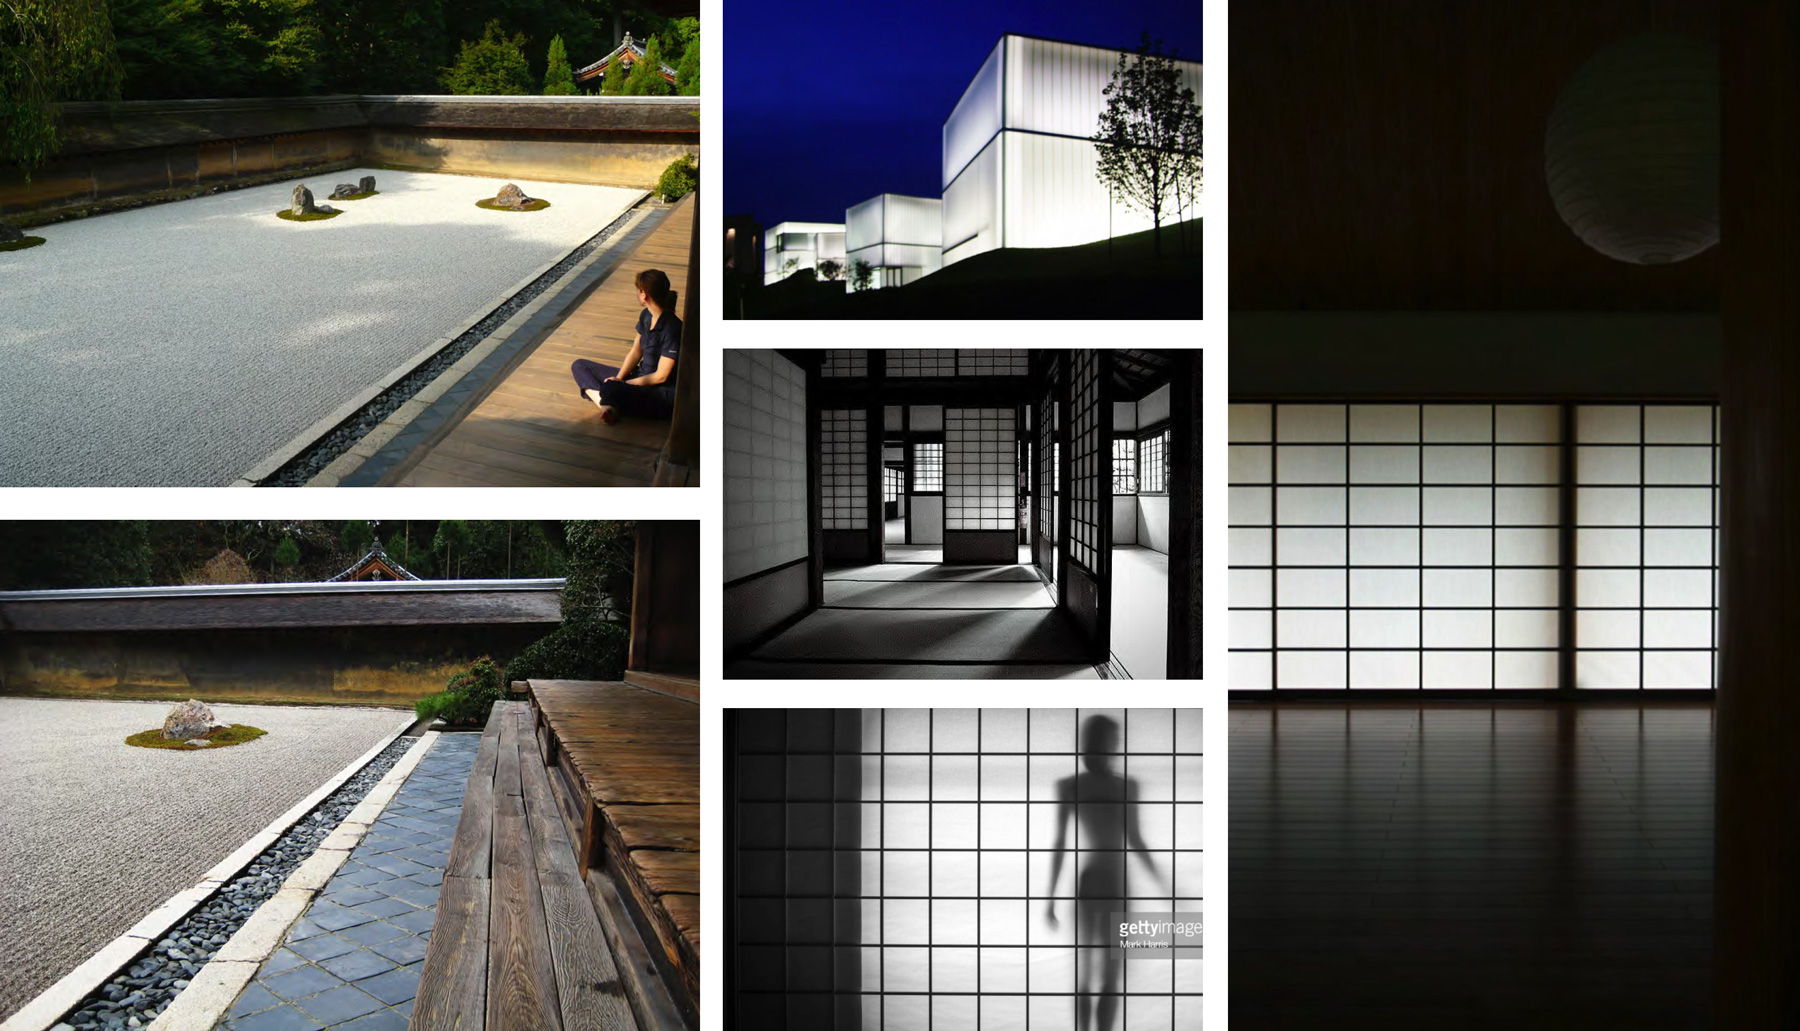 Precedents to incorporate a Japanese minimalist aesthetic.